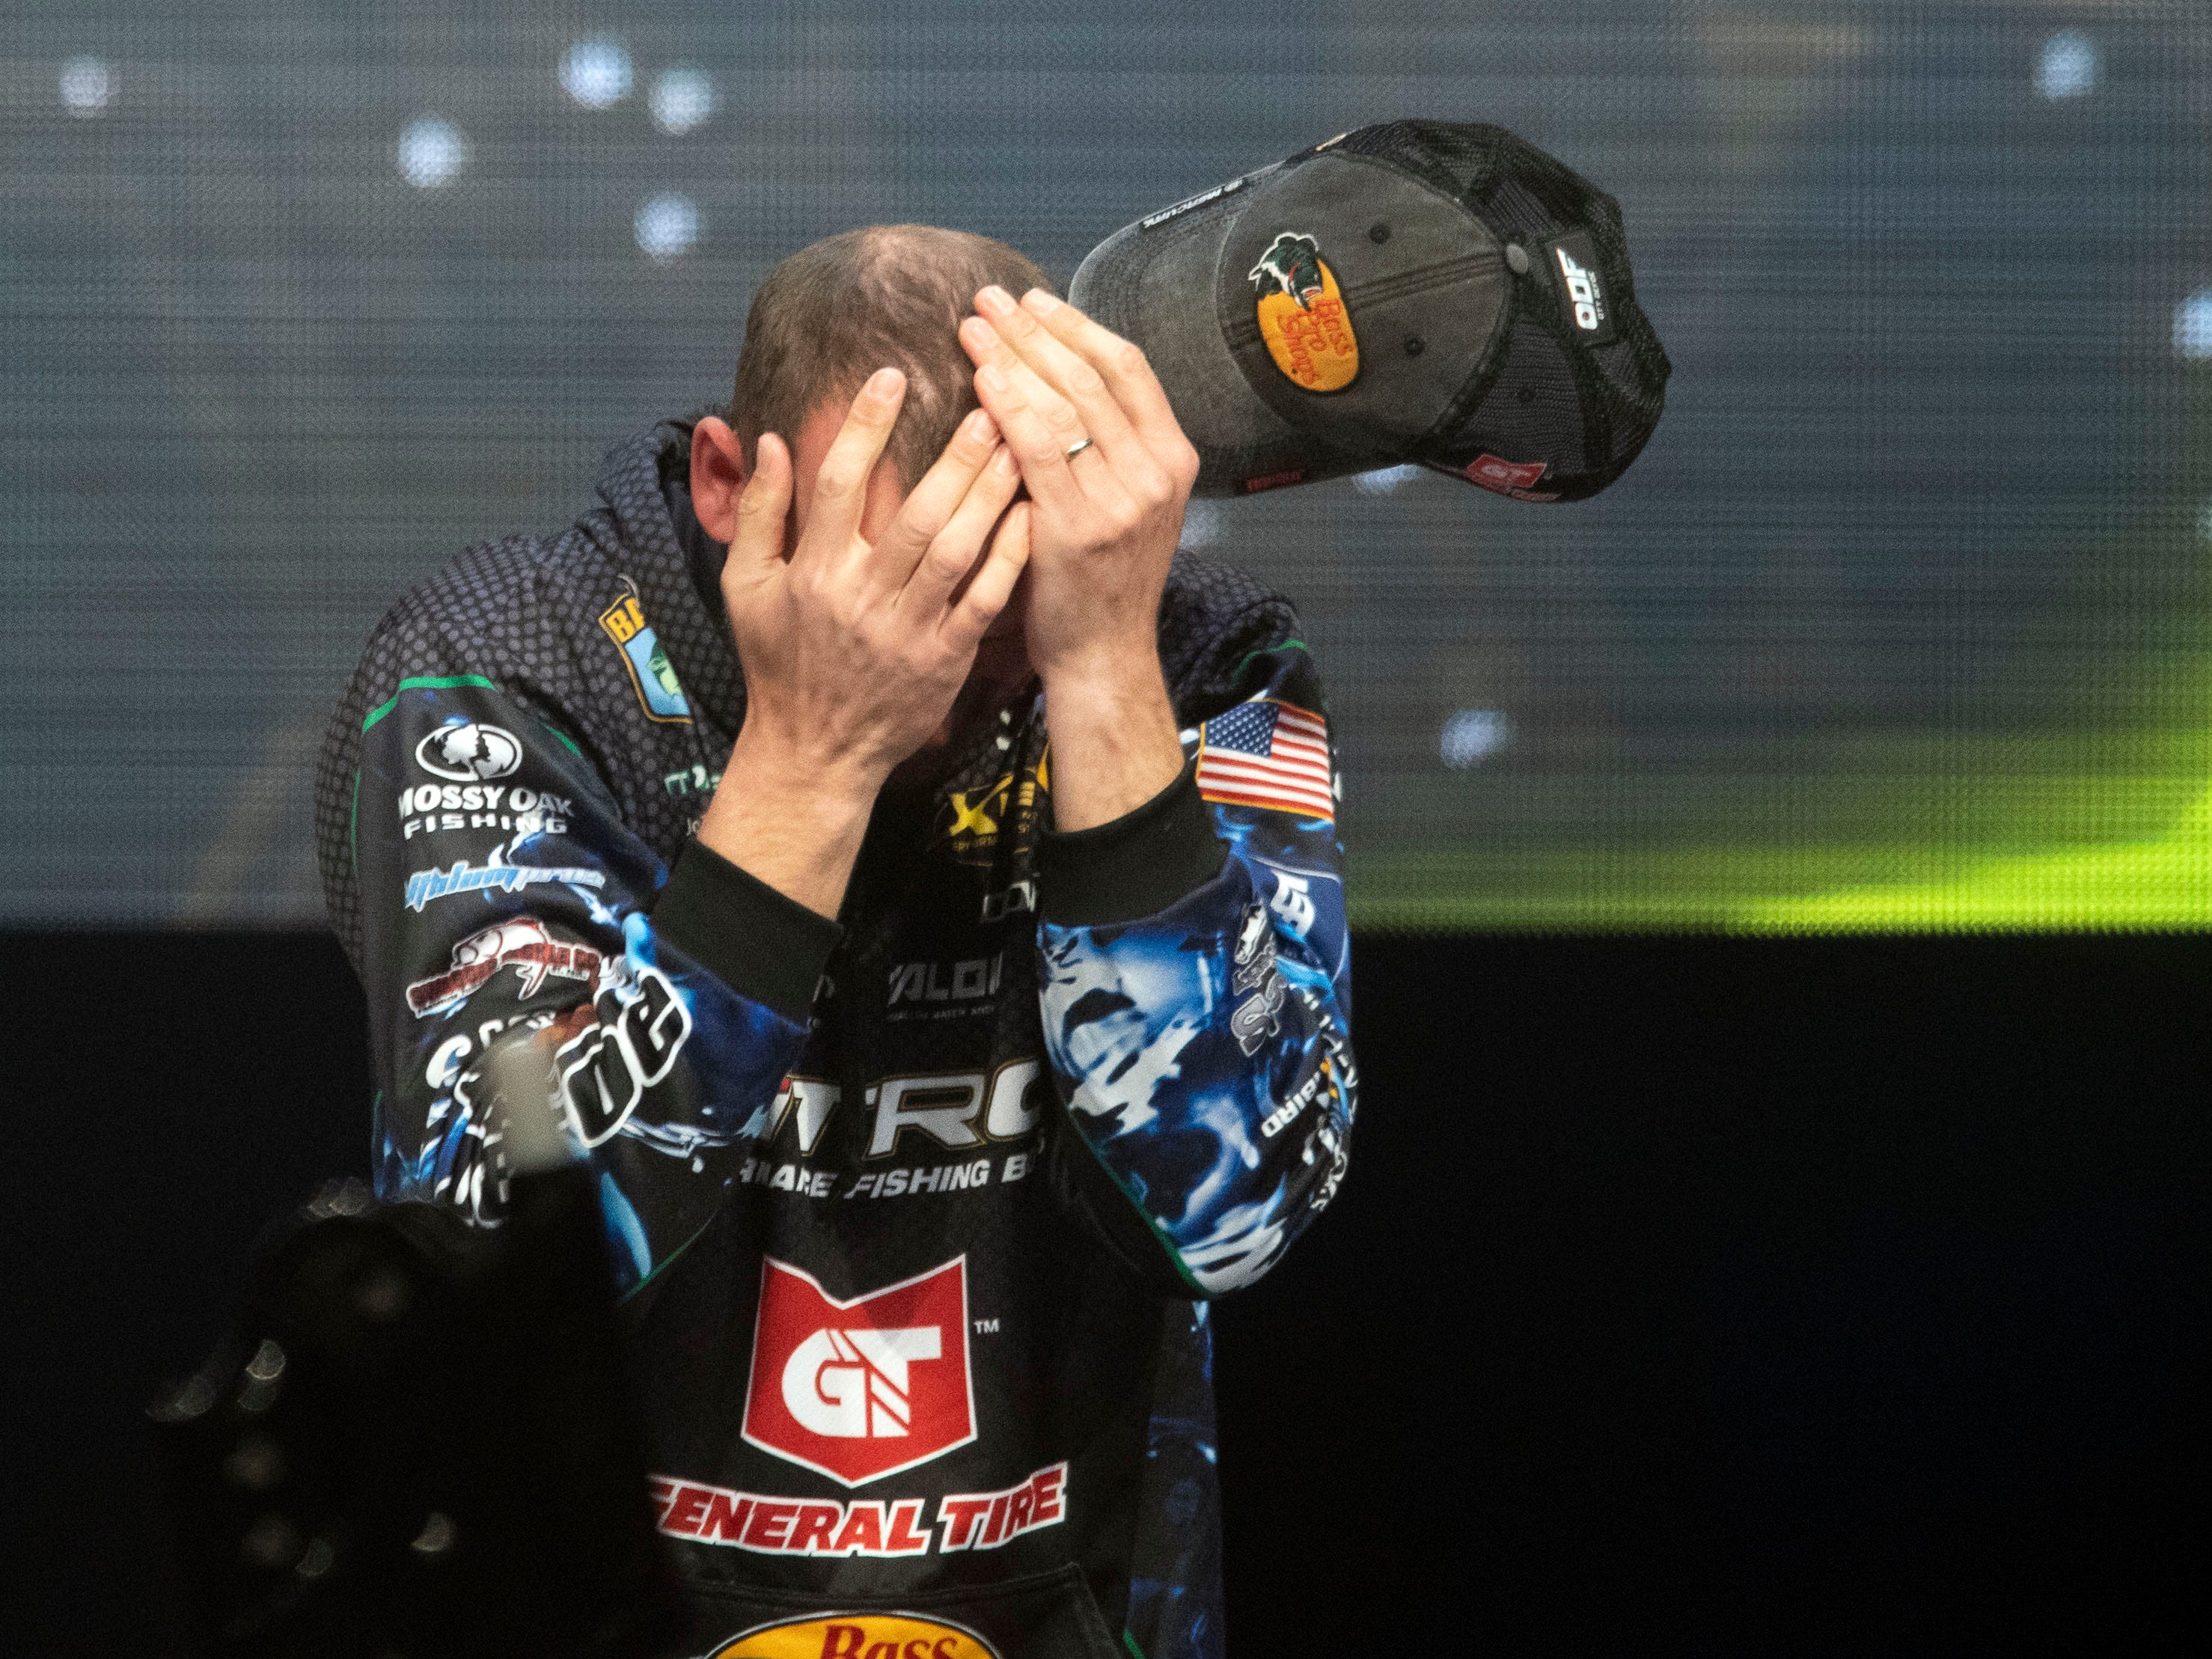 Emotions overwhelm Ott DeFoe as he is announced as the winner of the Bassmaster Classic at Thompson-Boling Arena on Sunday, March 17, 2019.